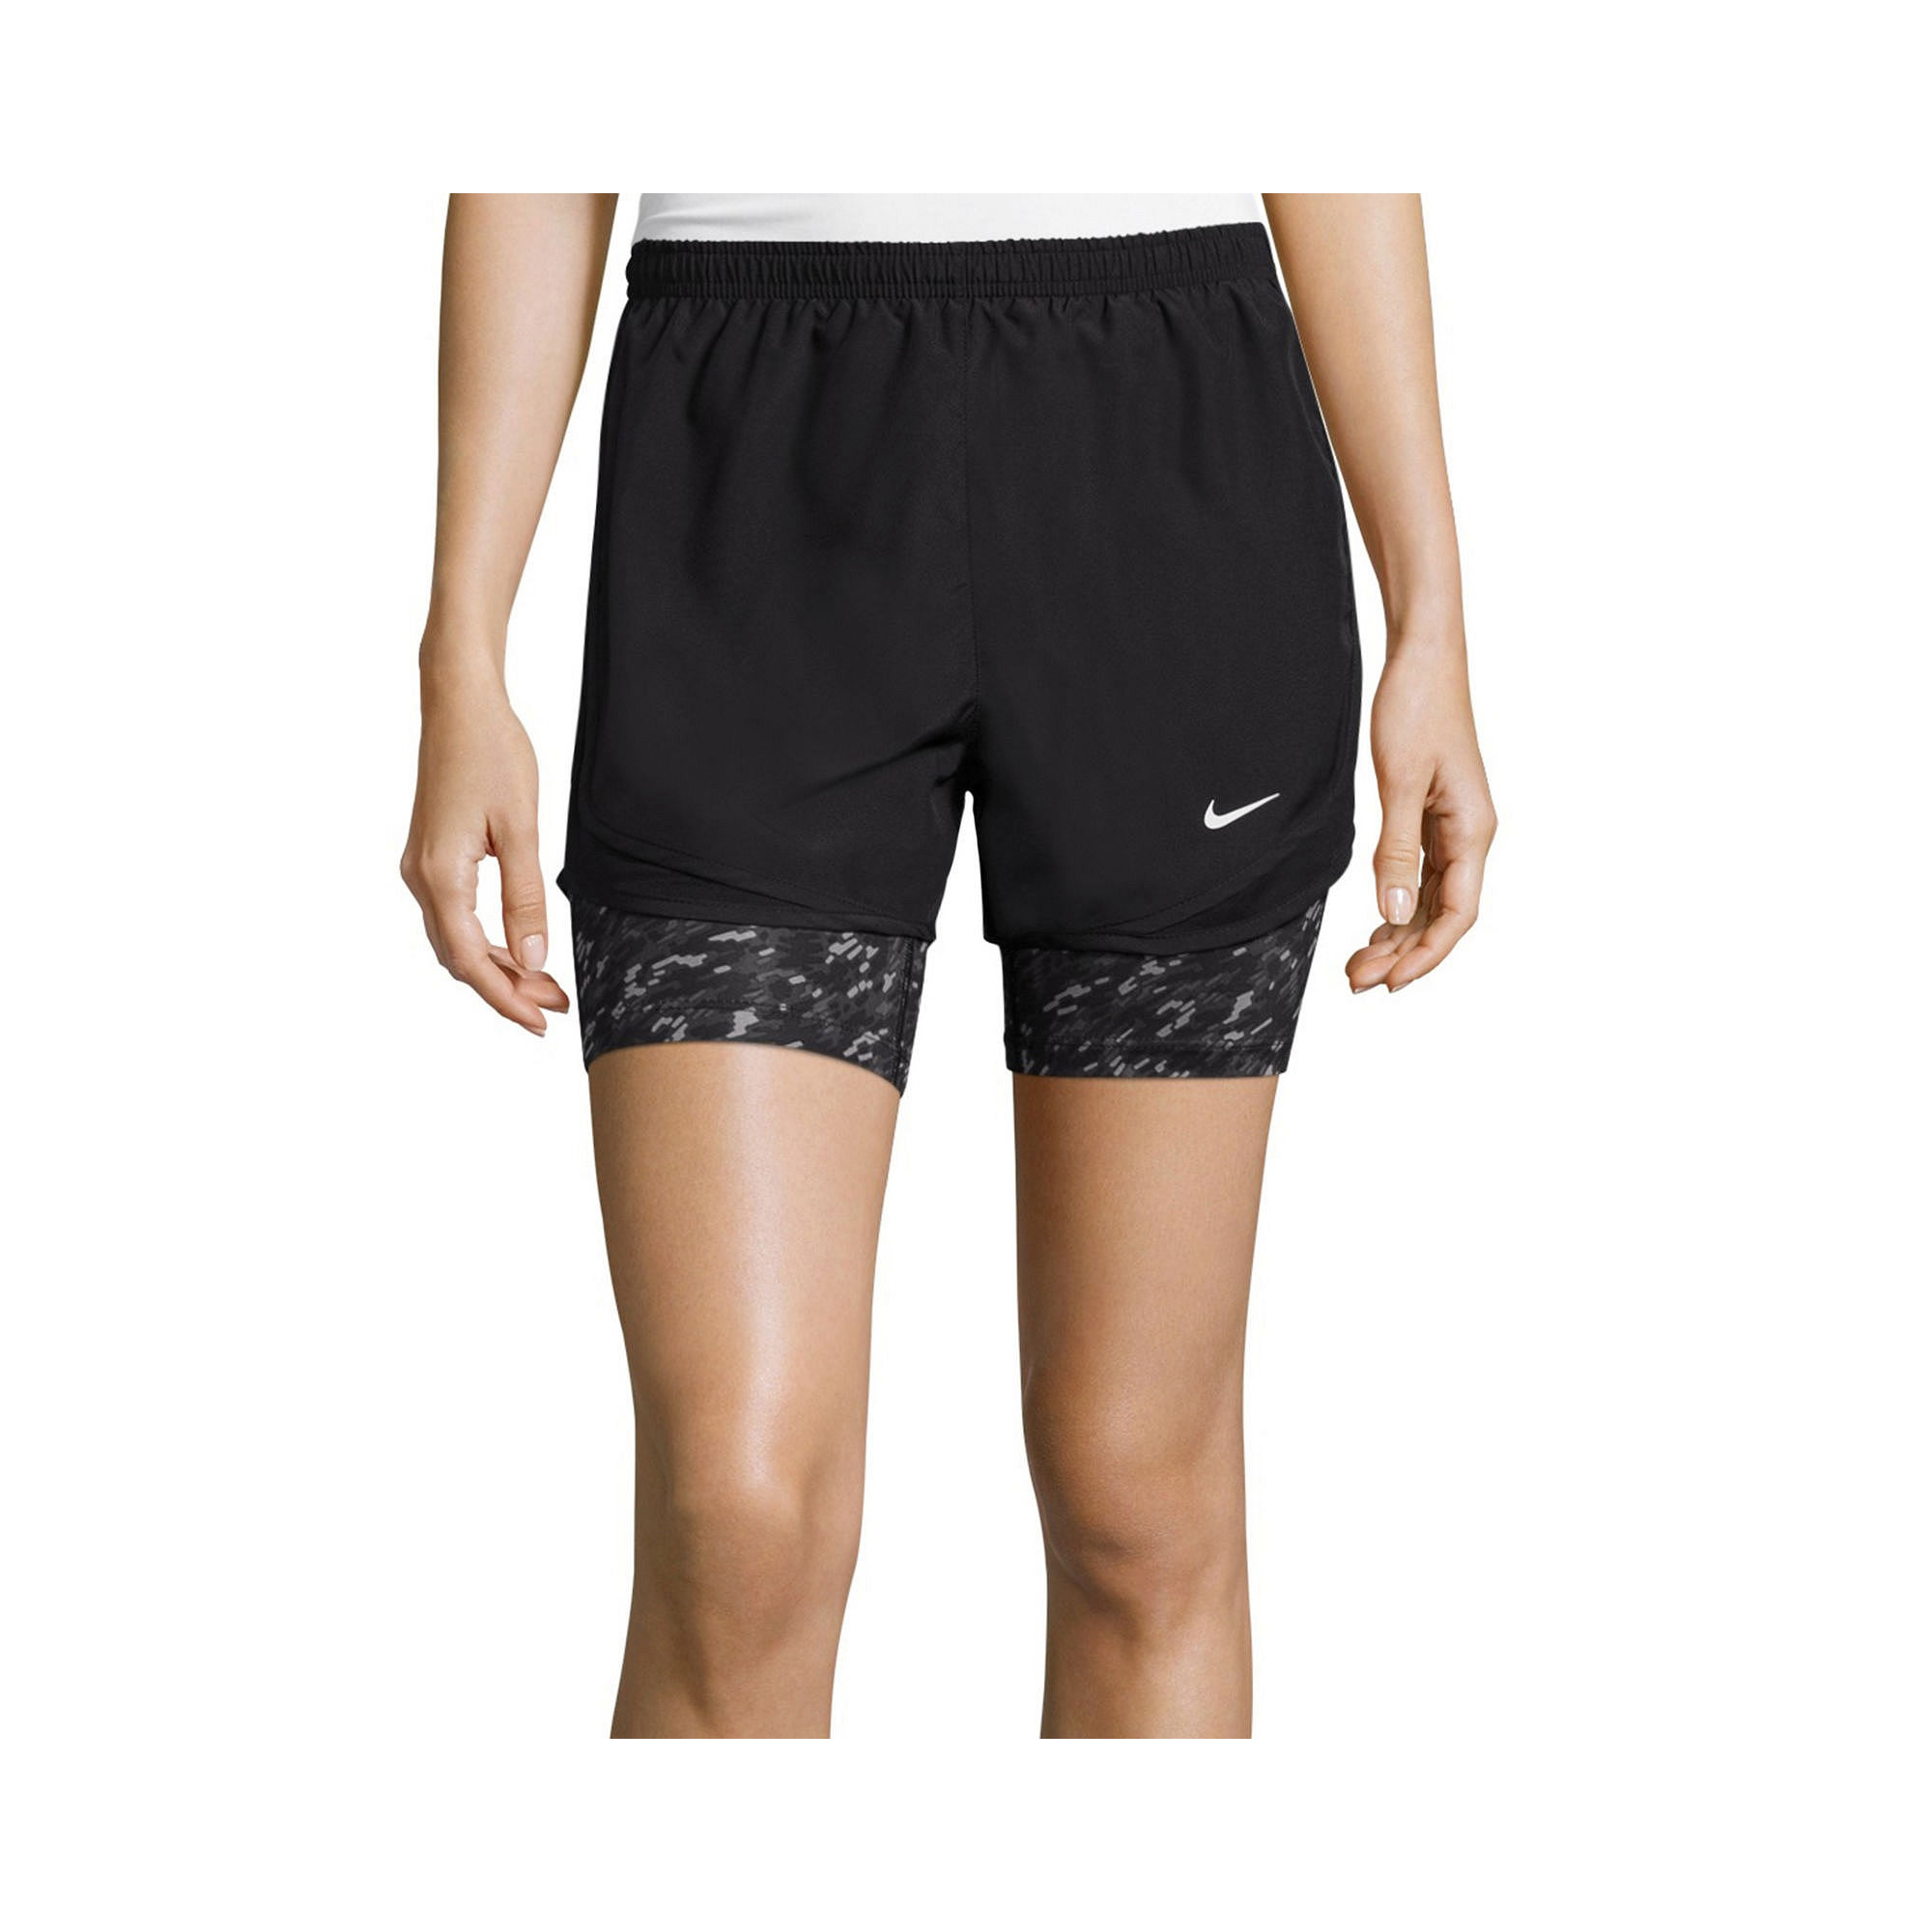 Nike womens running shorts with liner - Upc 826218280030 Product Image For Nike 2 In 1 Dri Fit Tempo Running